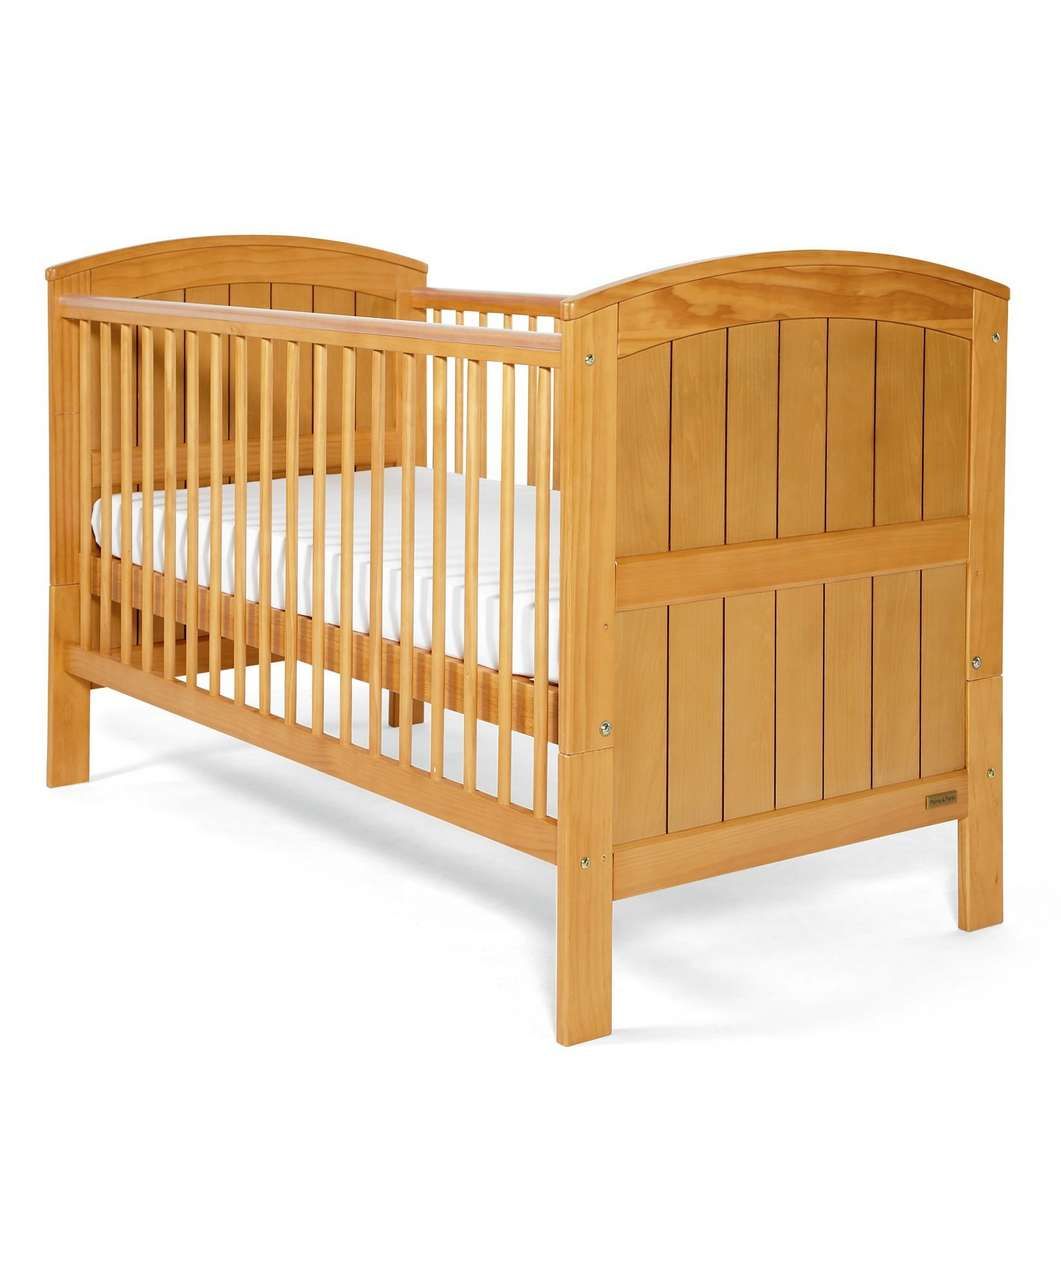 Wooden Cot - All Baby Hire Brisbane Central